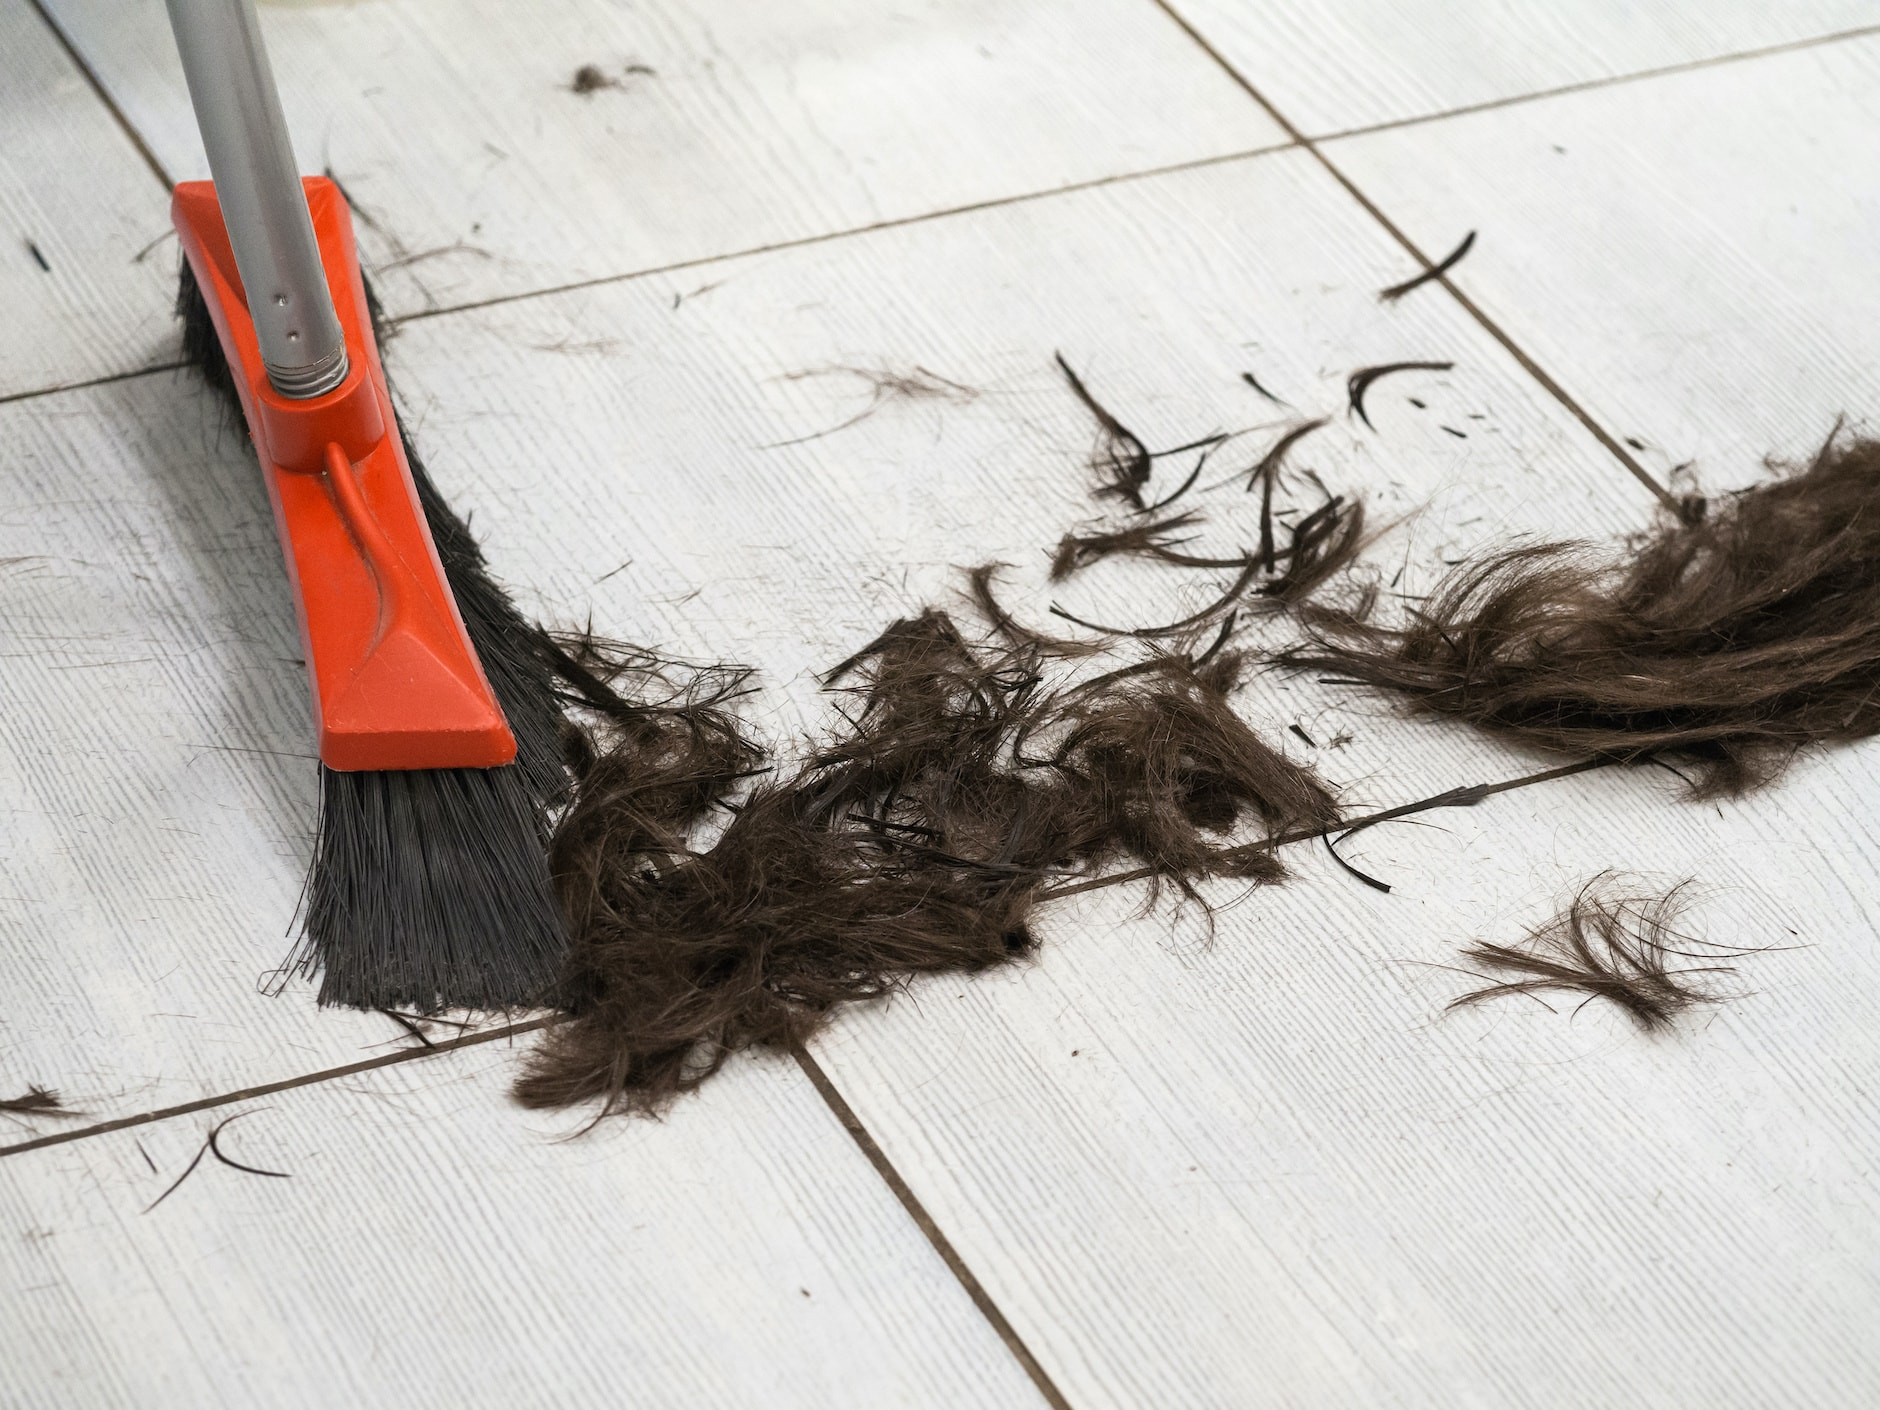 hair clippings being swept up at the barber